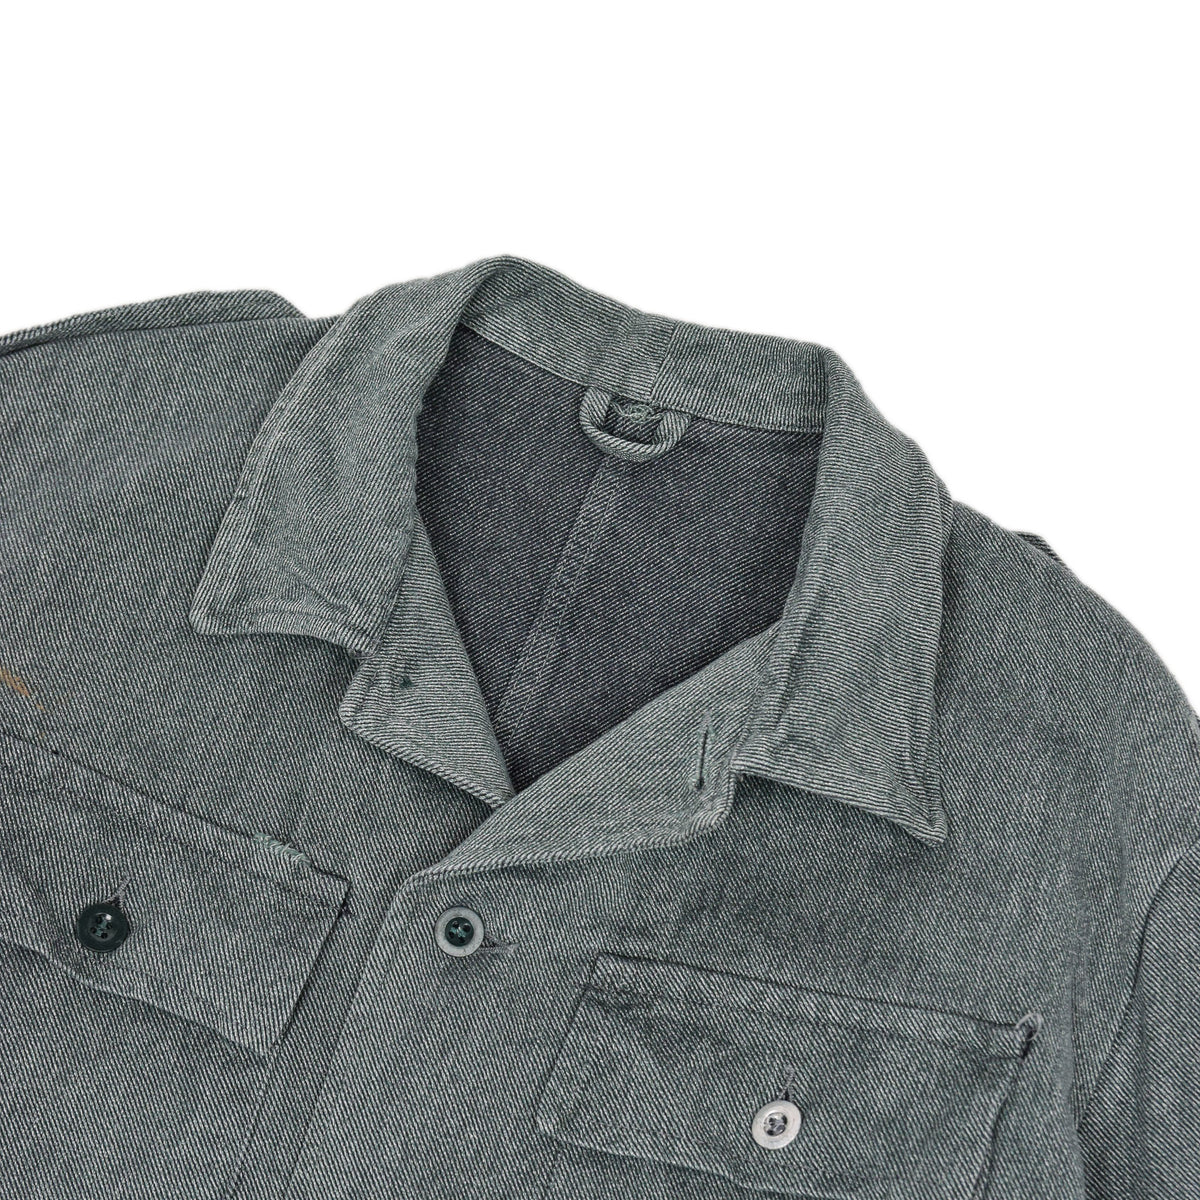 Vintage 60s Swiss Army Salt & Pepper Denim Worker Chore Jacket L collar